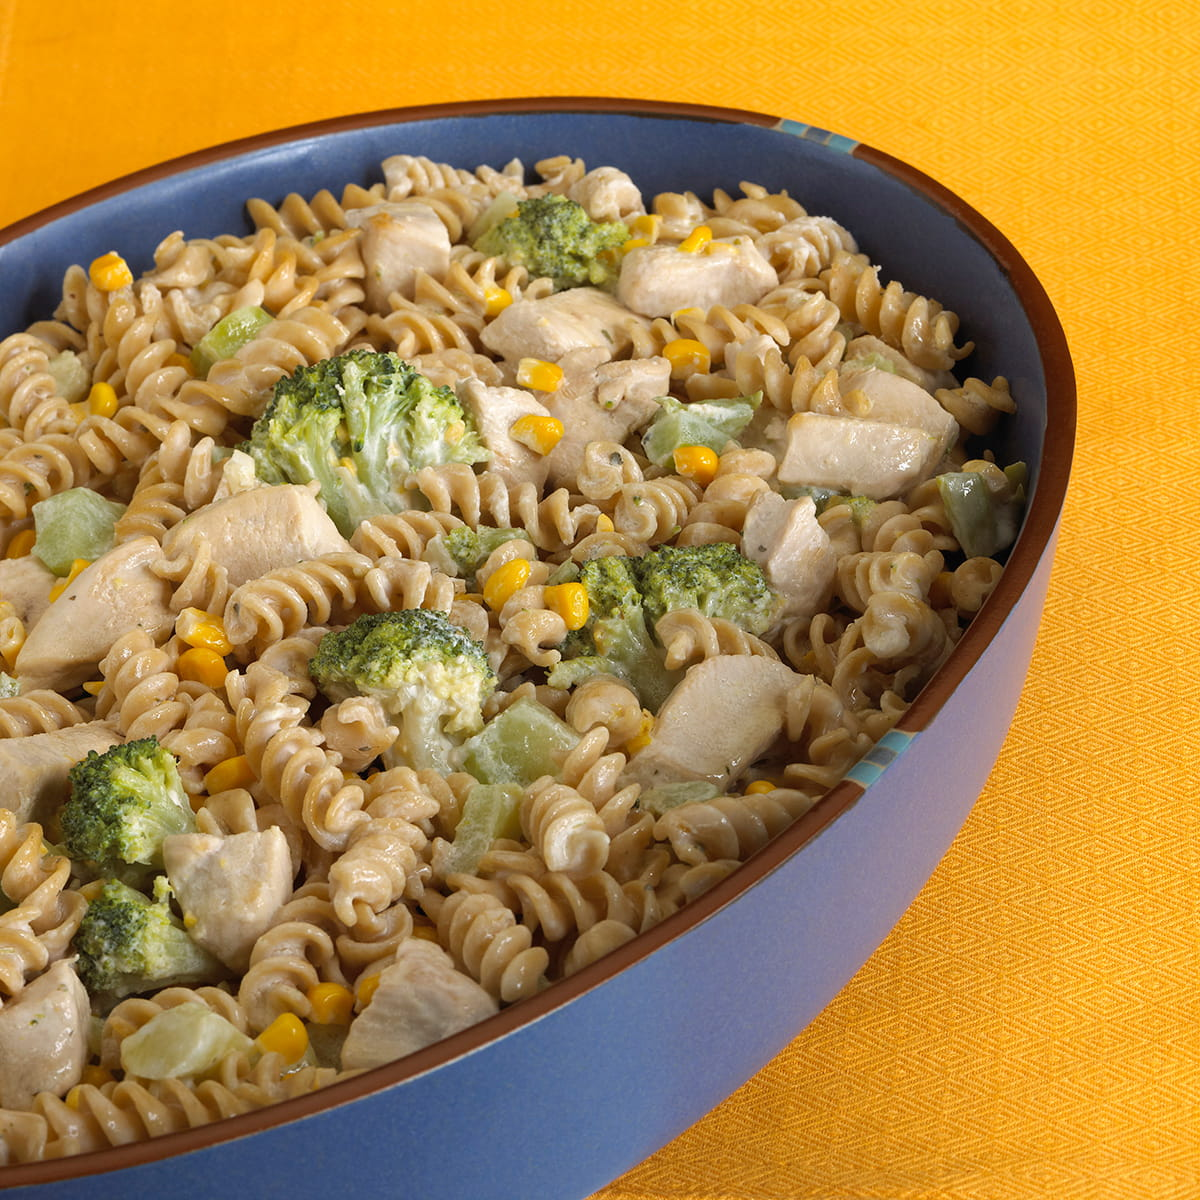 Creamy Chicken Broccoli Casserole with Whole Wheat Pasta